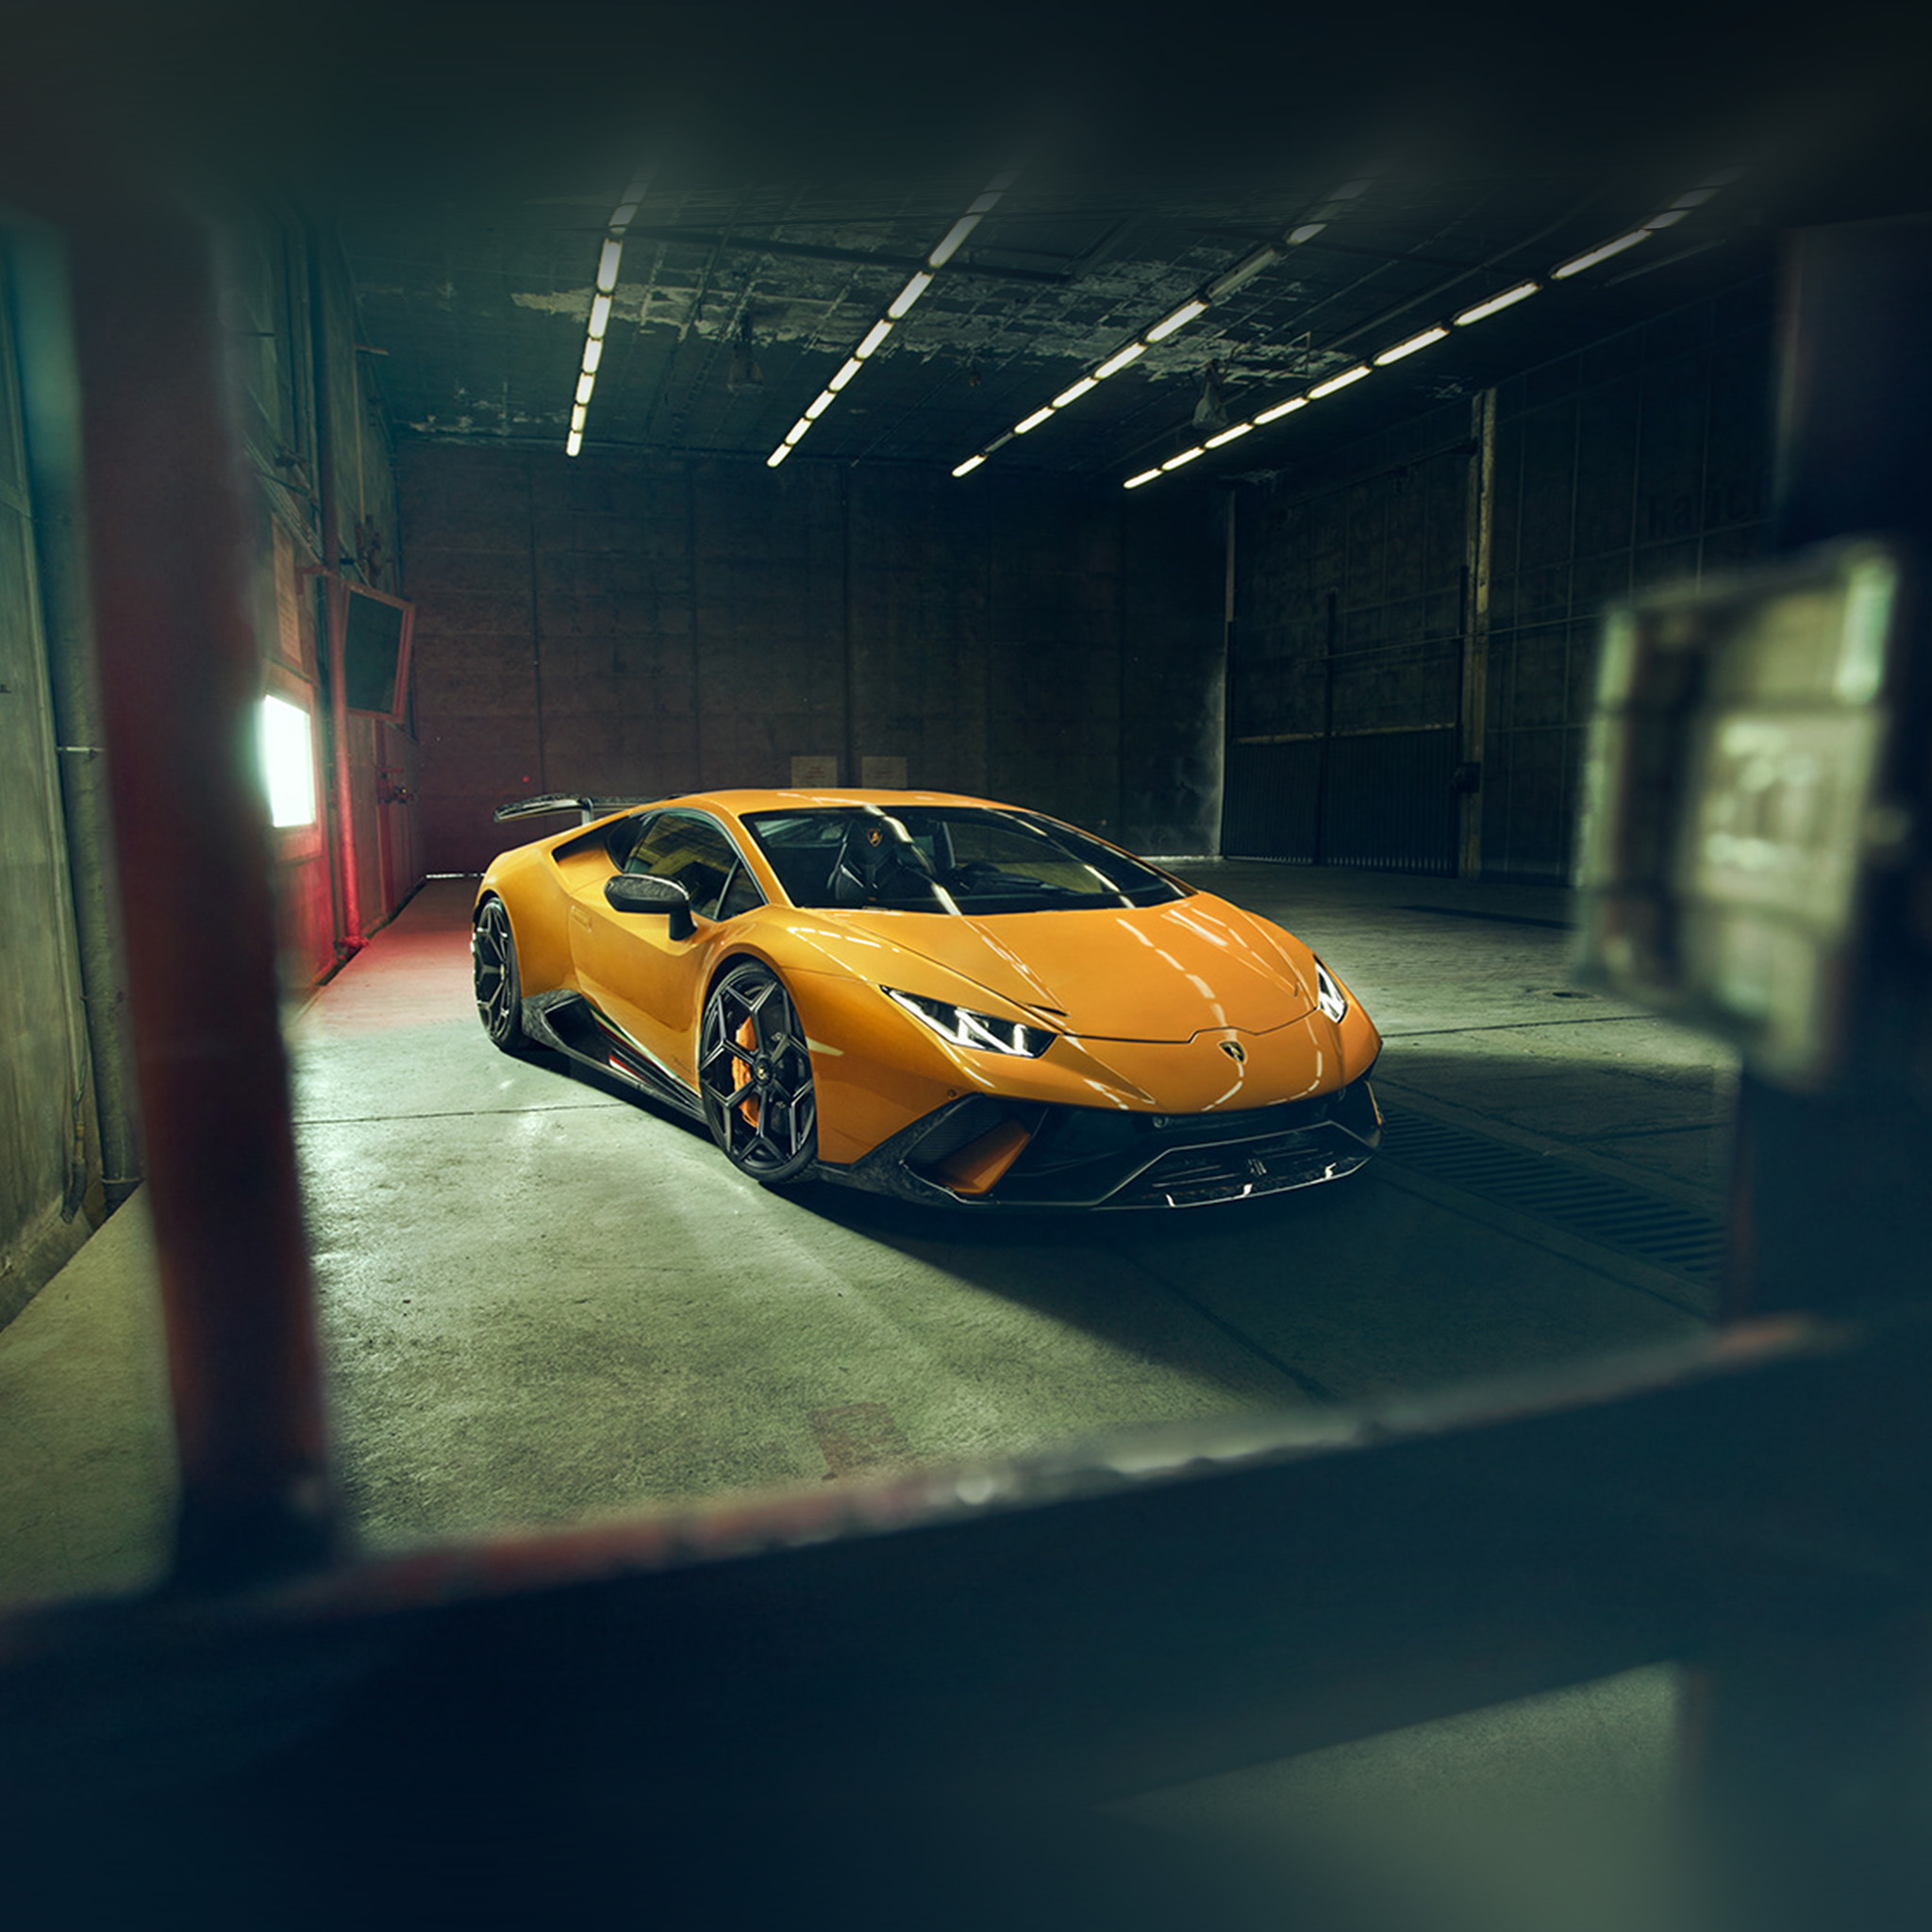 Bf66 Lamborghini Yellow Car Garage Art Wallpaper